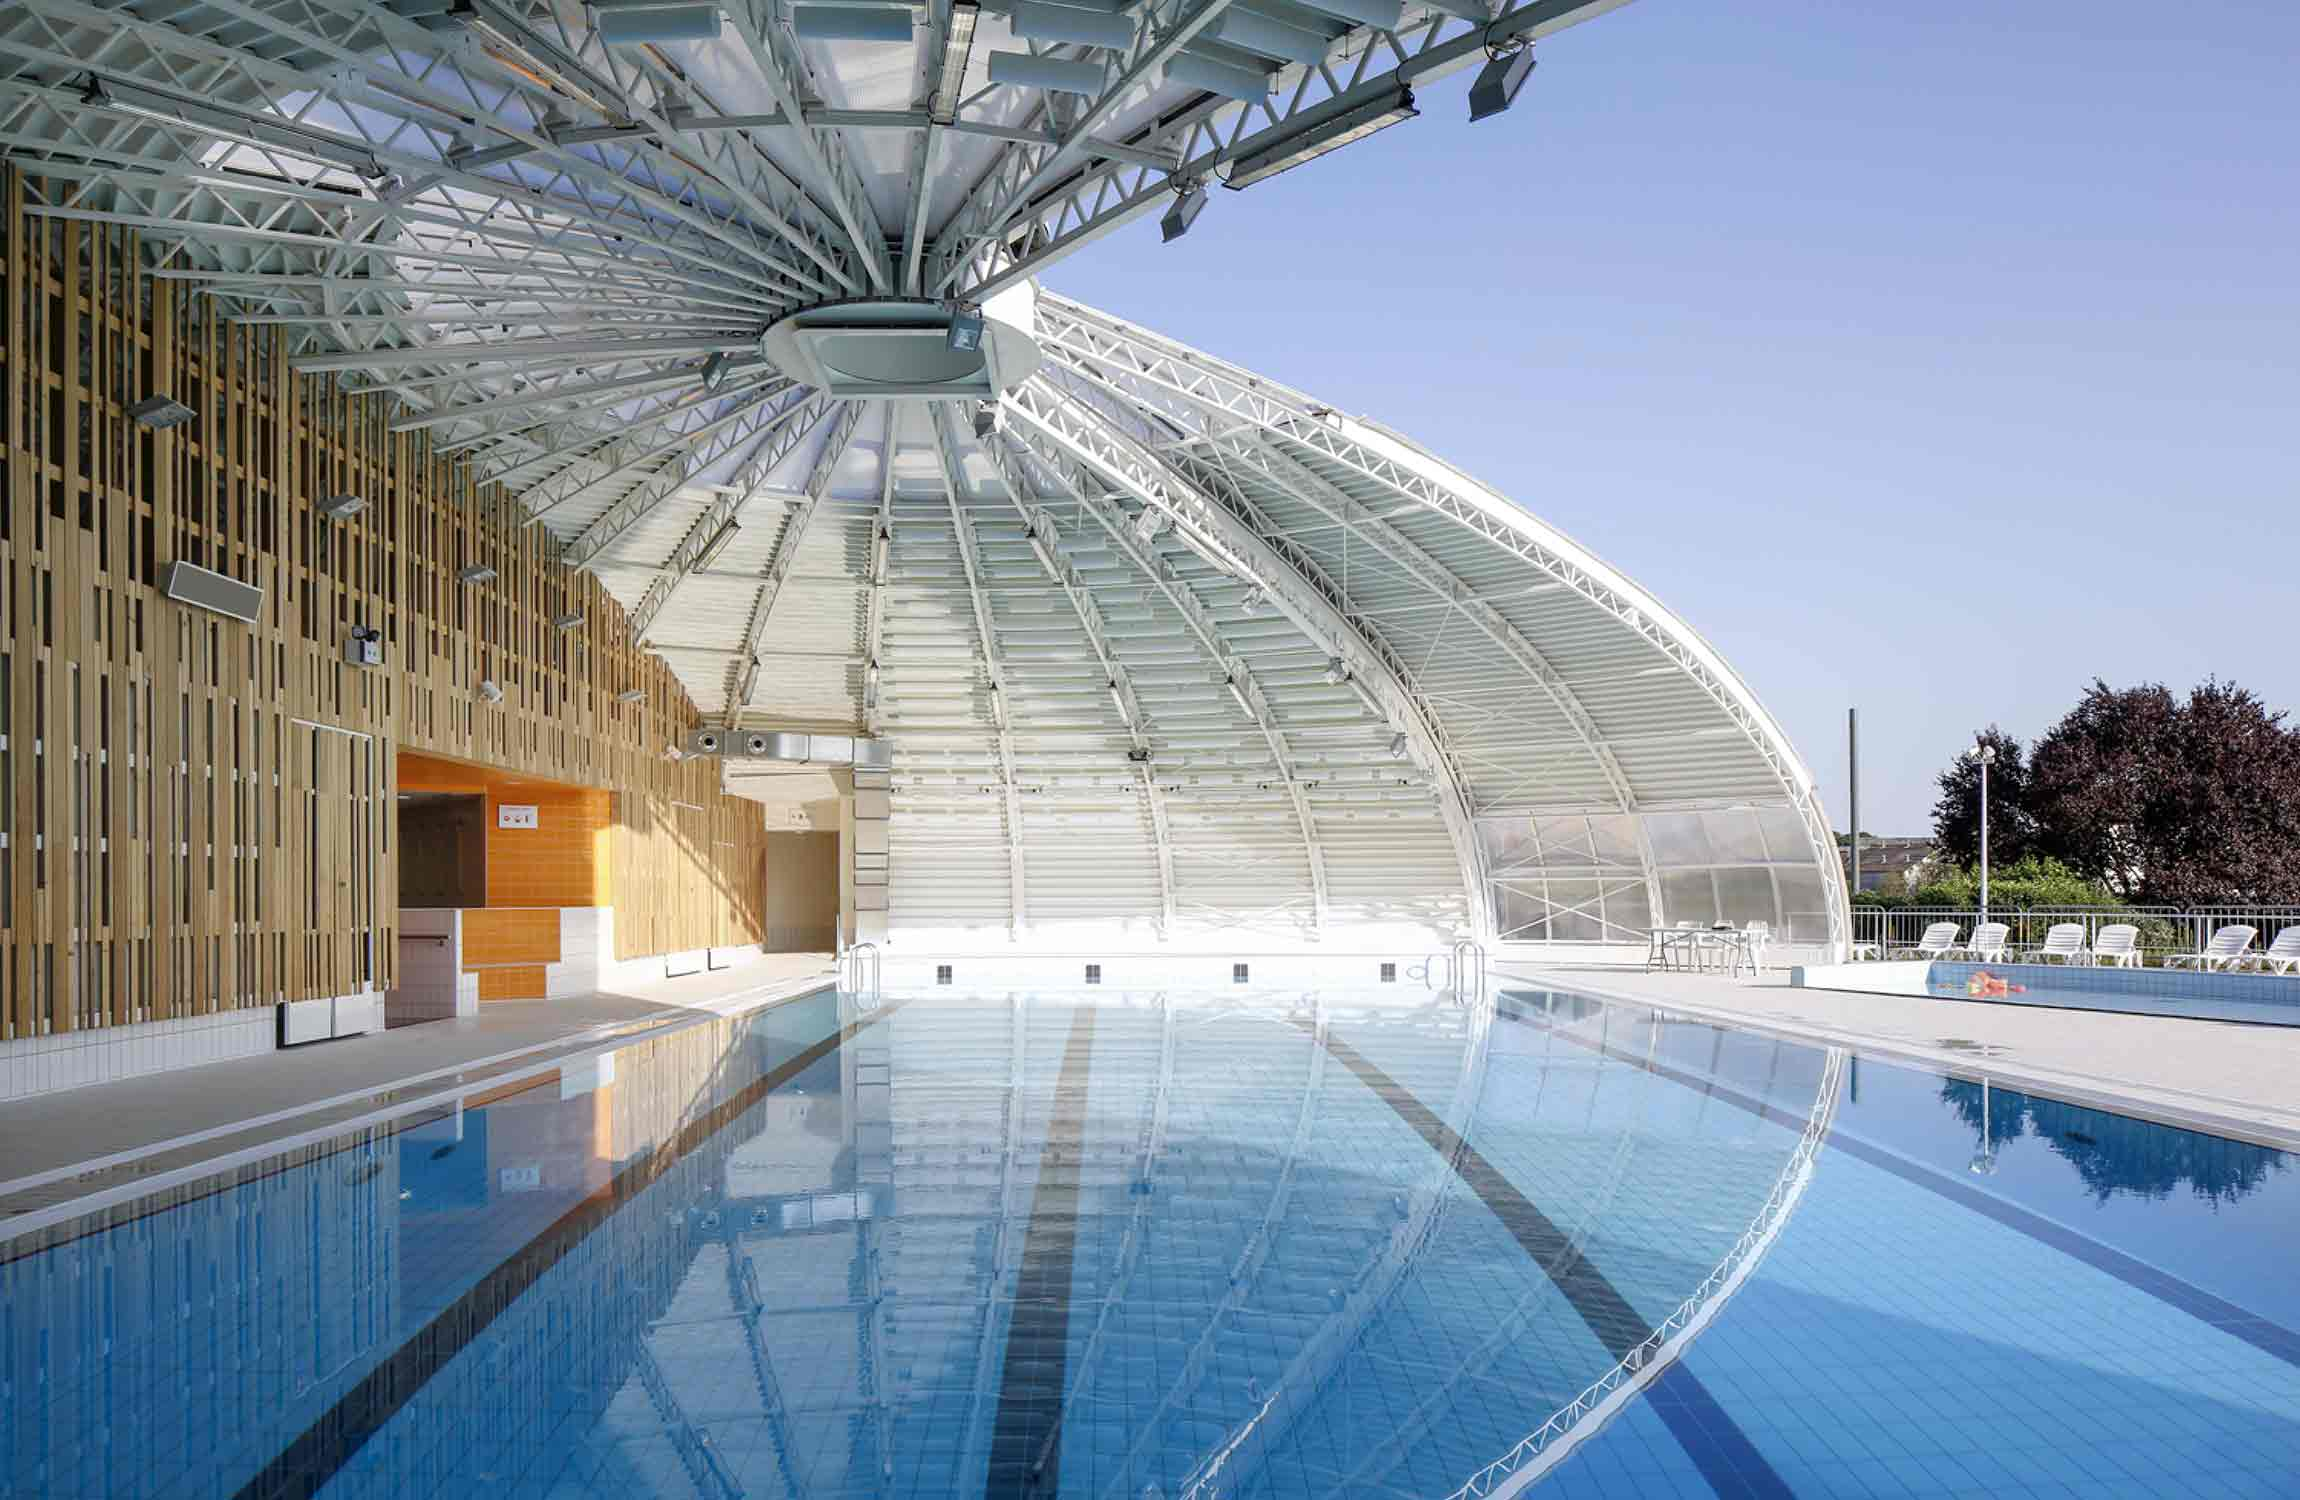 Piscine tournesol tna architectes paris for Projet piscine